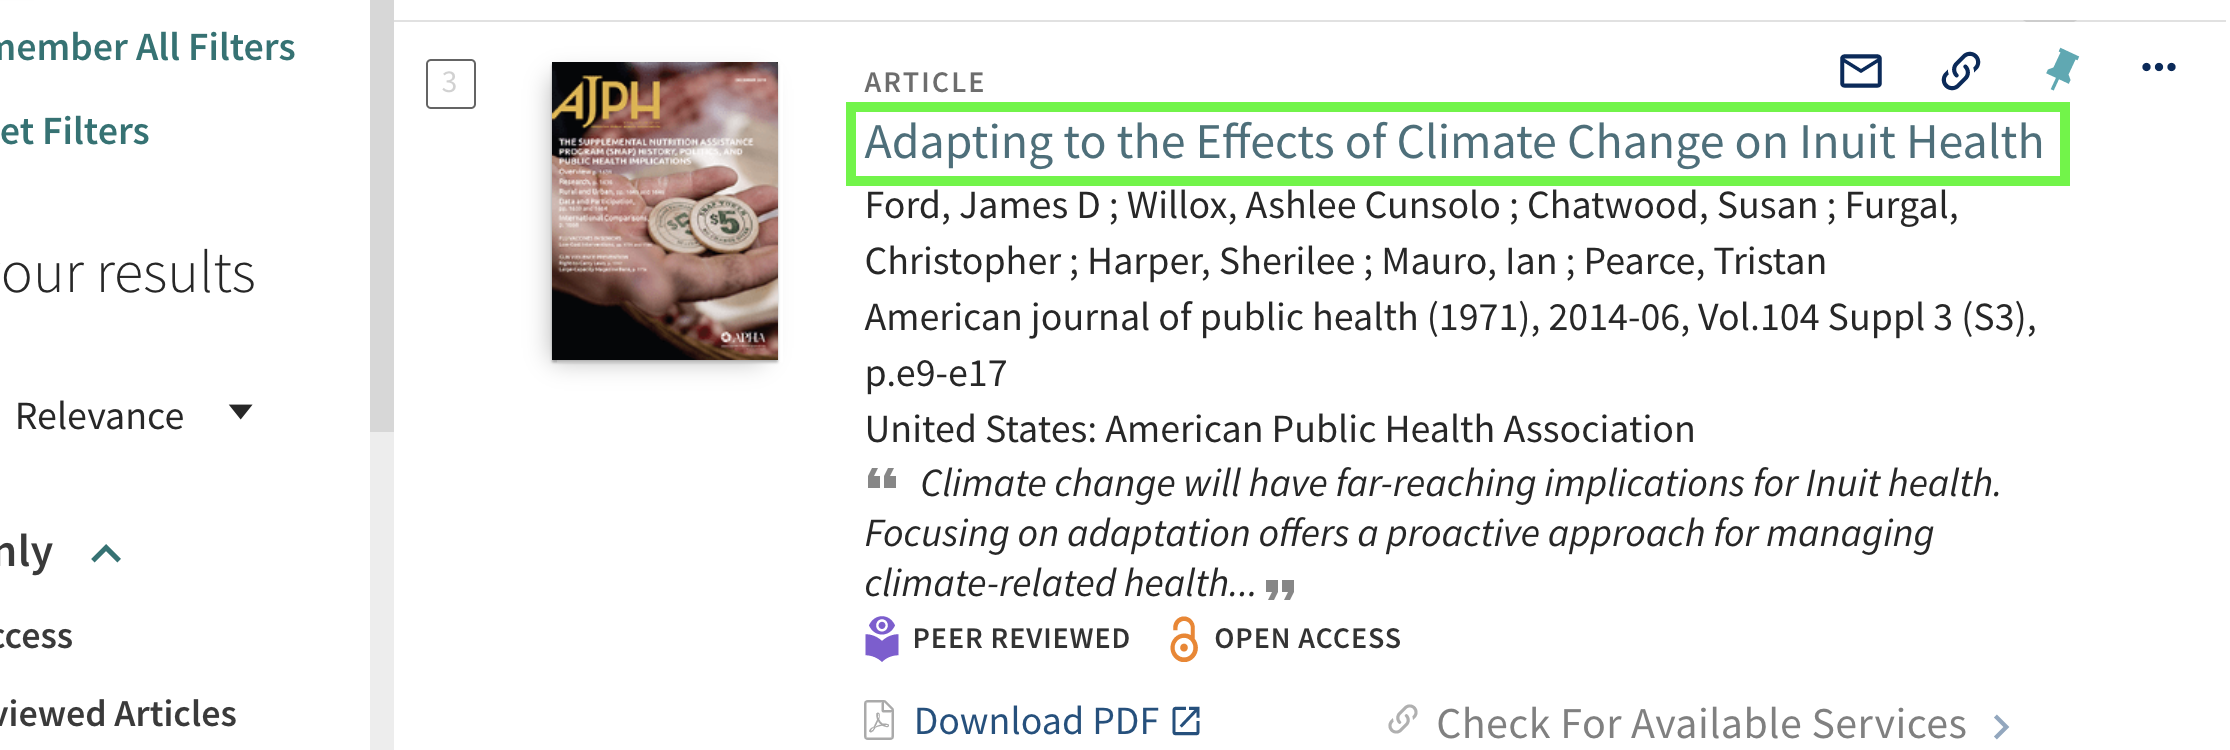 A brief article record highlighting the title: Adapting to the Effects of Climate Change on Inuit Health.